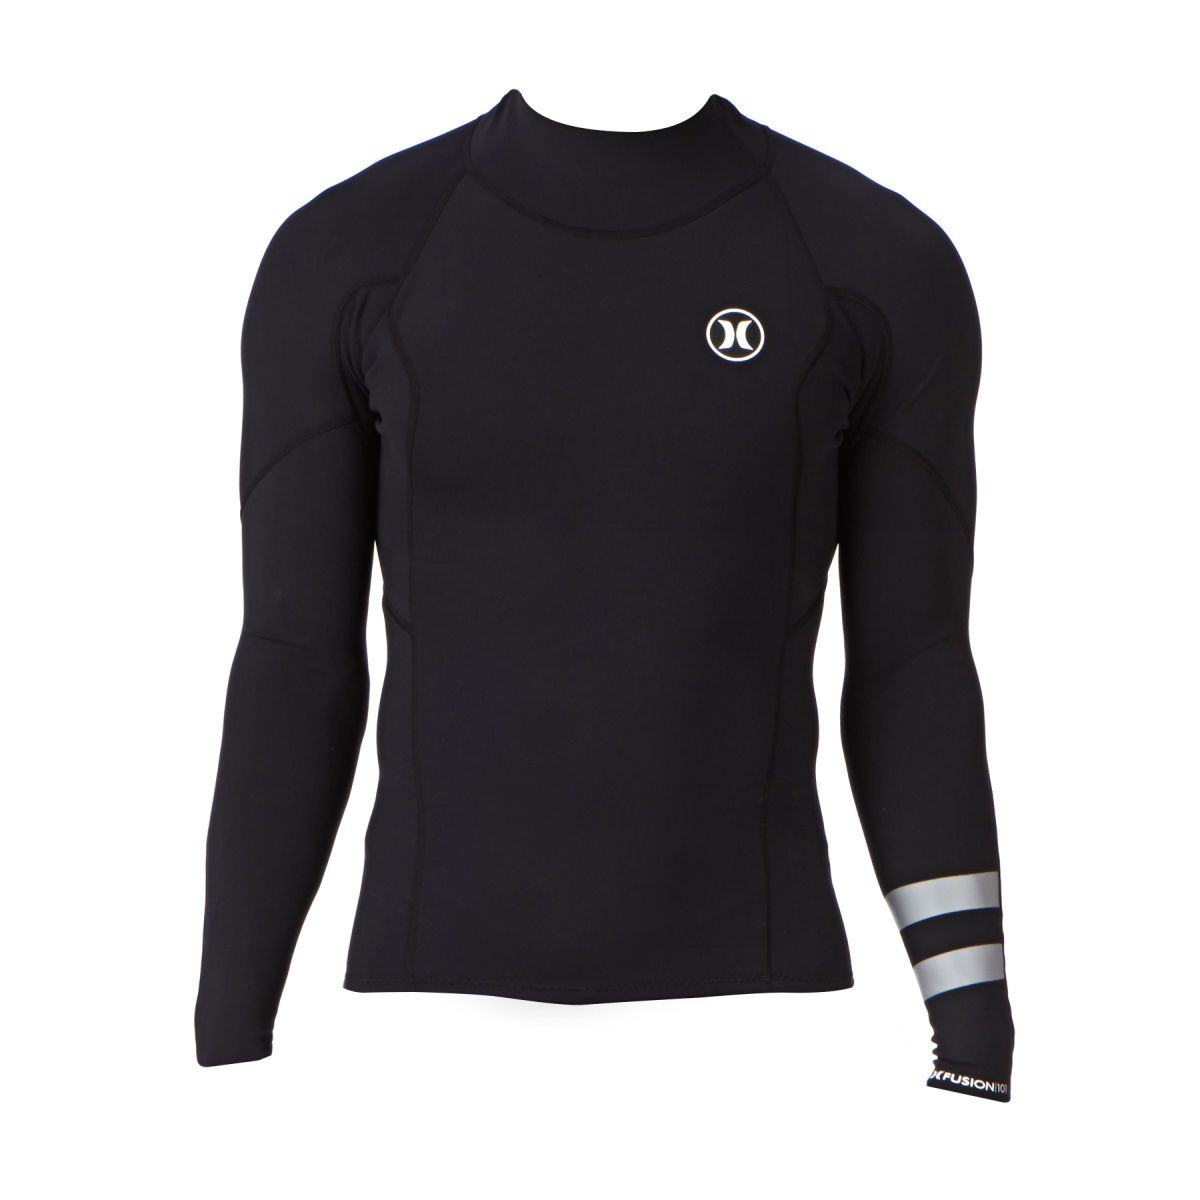 Hurley Wetsuit Jackets - Hurley Fusion 1mm Long Sleeve Wetsuit Jacket -  Black